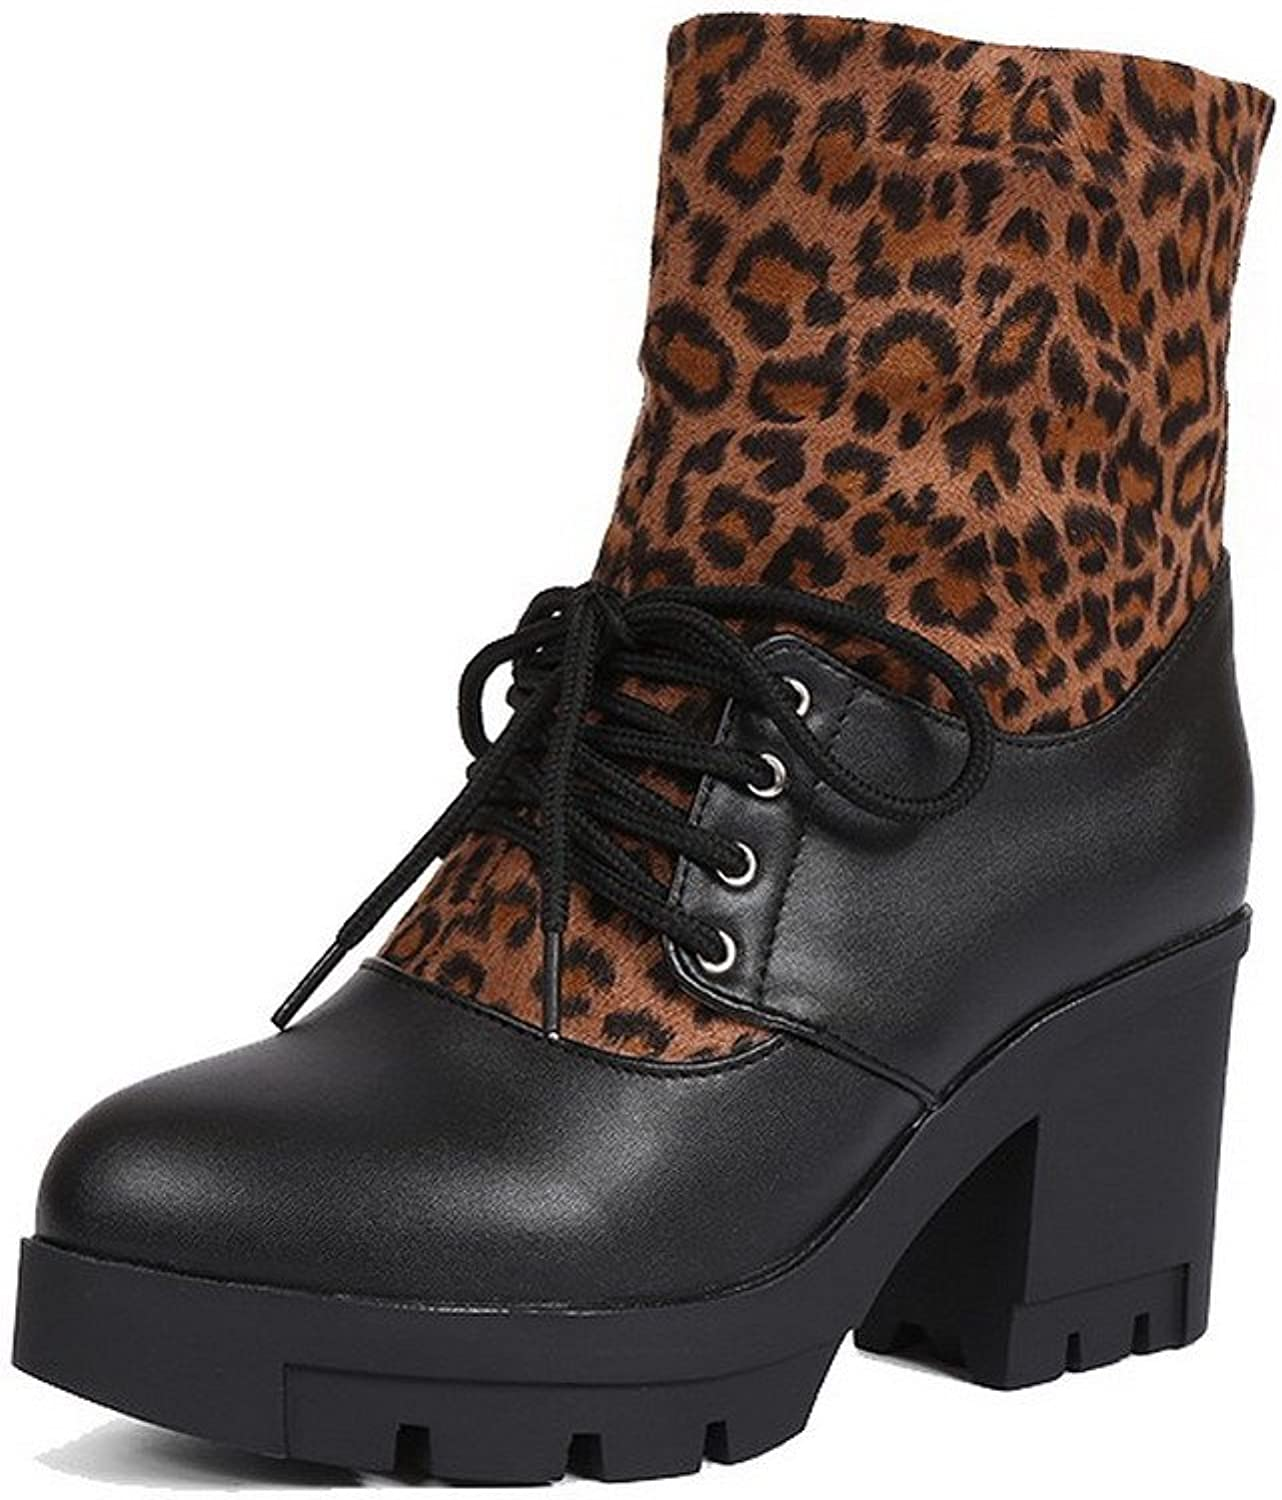 WeiPoot Women's Soft Material Round Closed Toe Assorted color Low-Top High-Heels Boots